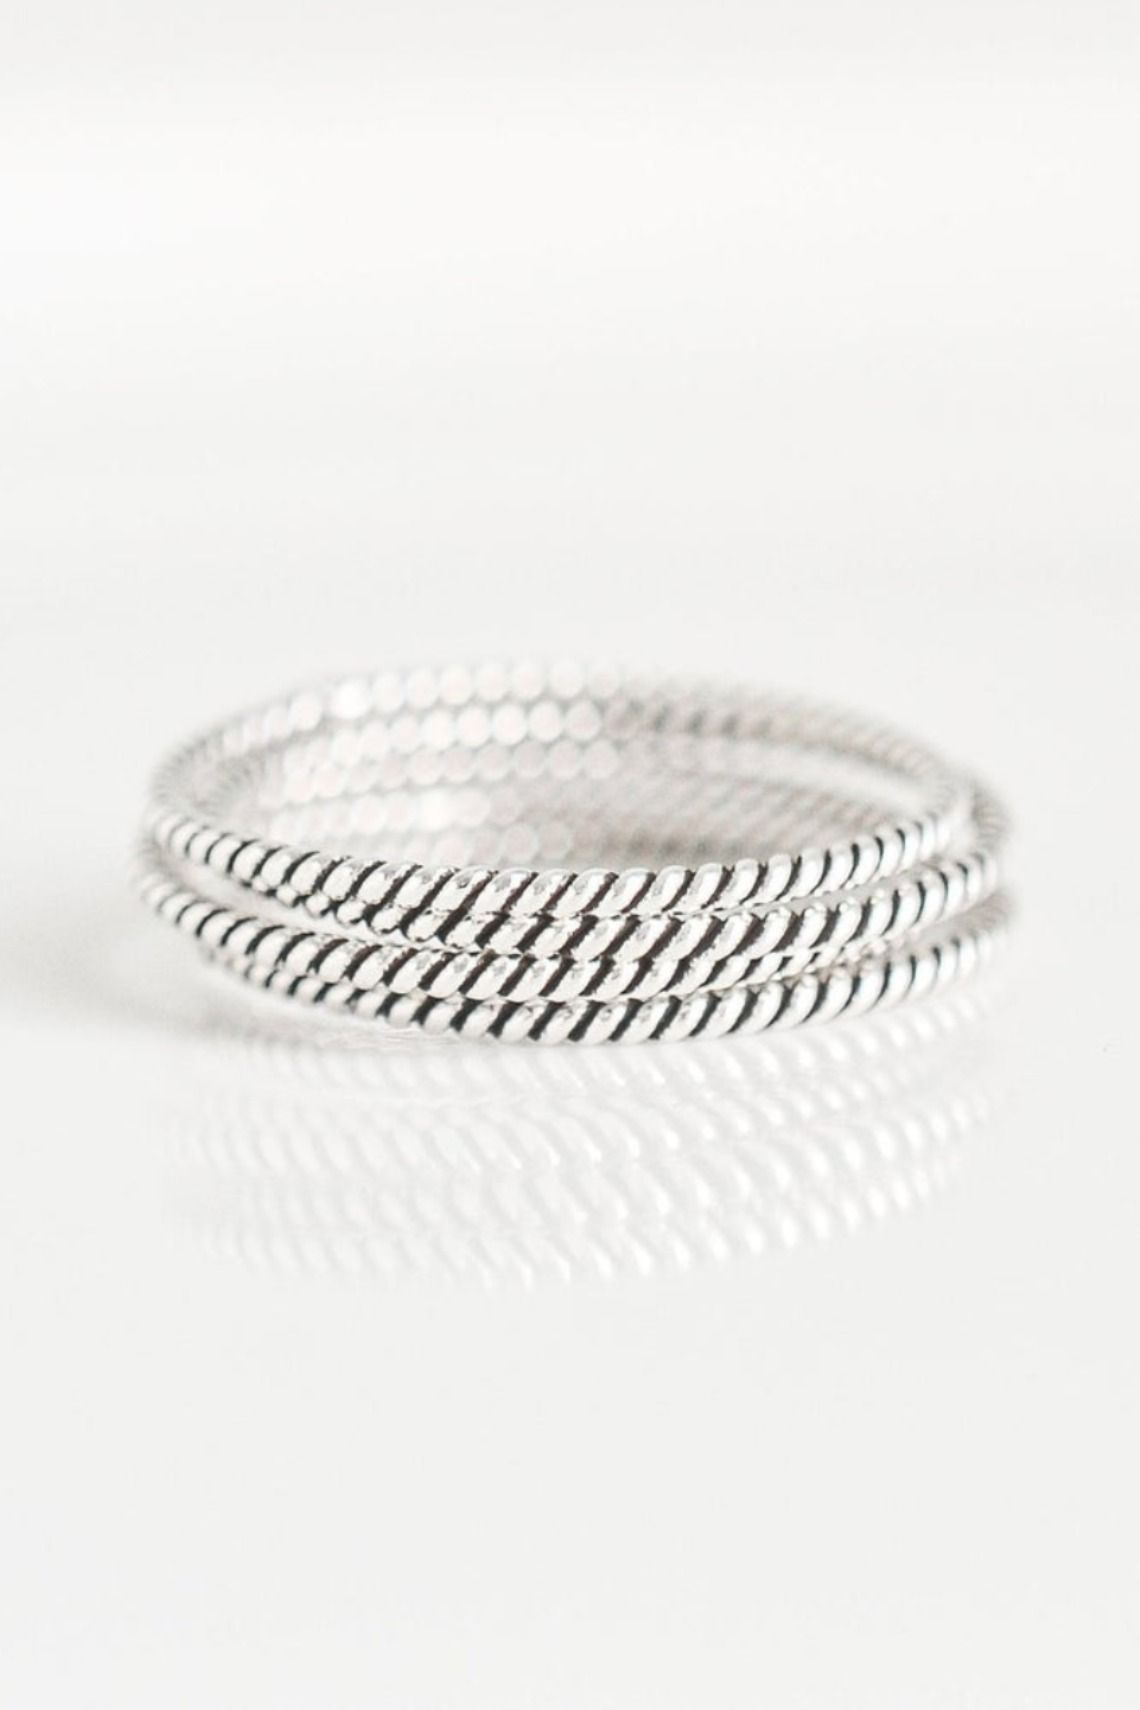 Silver Twist Stacking Ring Thin Stackable Band Everyday Ring Sterling Silver Minimalist Rings